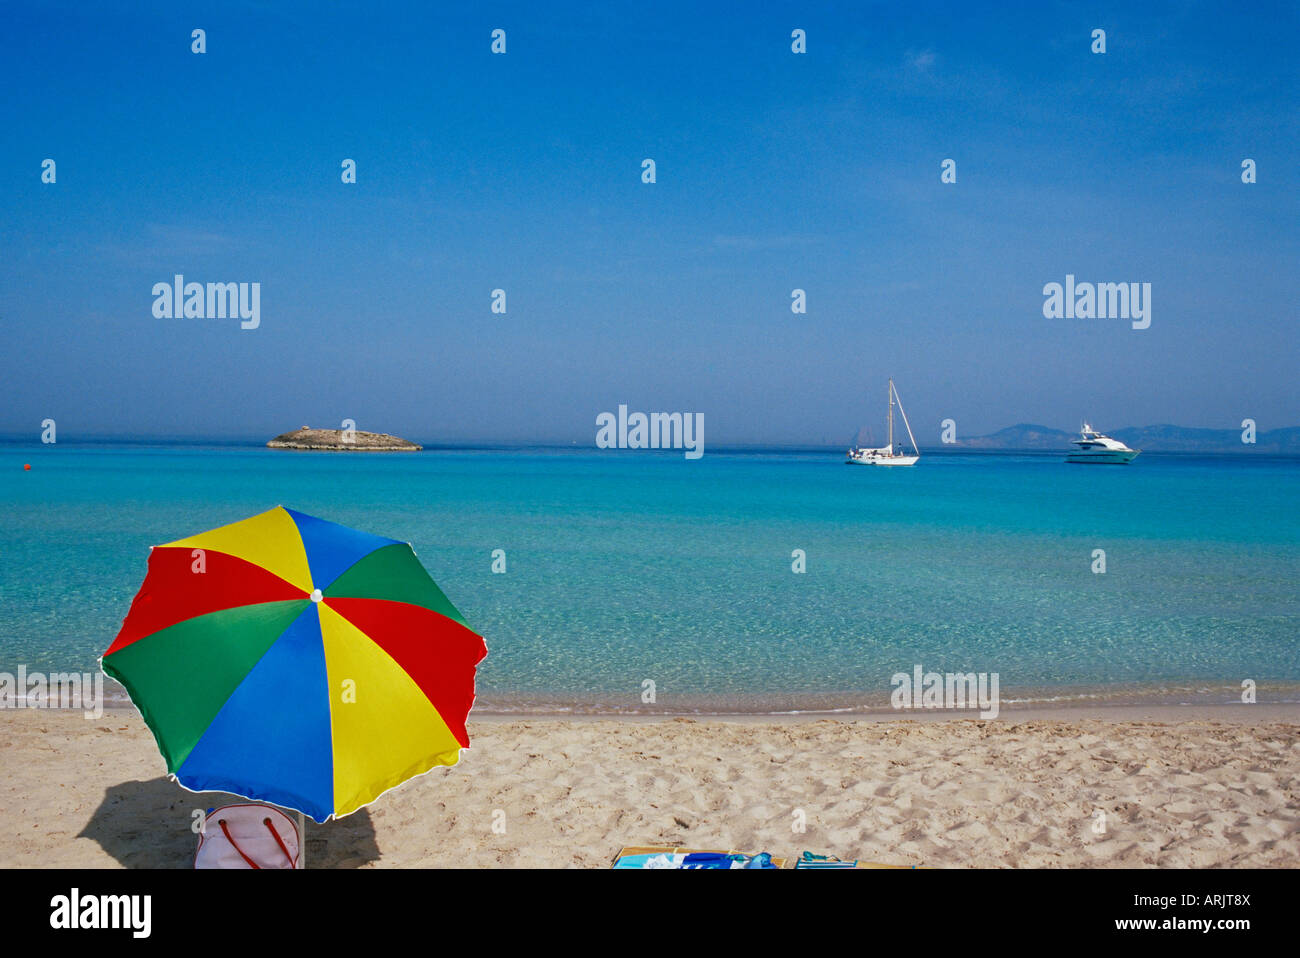 Colourful umbrella on Playa de ses Illetes beach, Formentera, Balearic Islands, Spain, Mediterranean, Europe - Stock Image